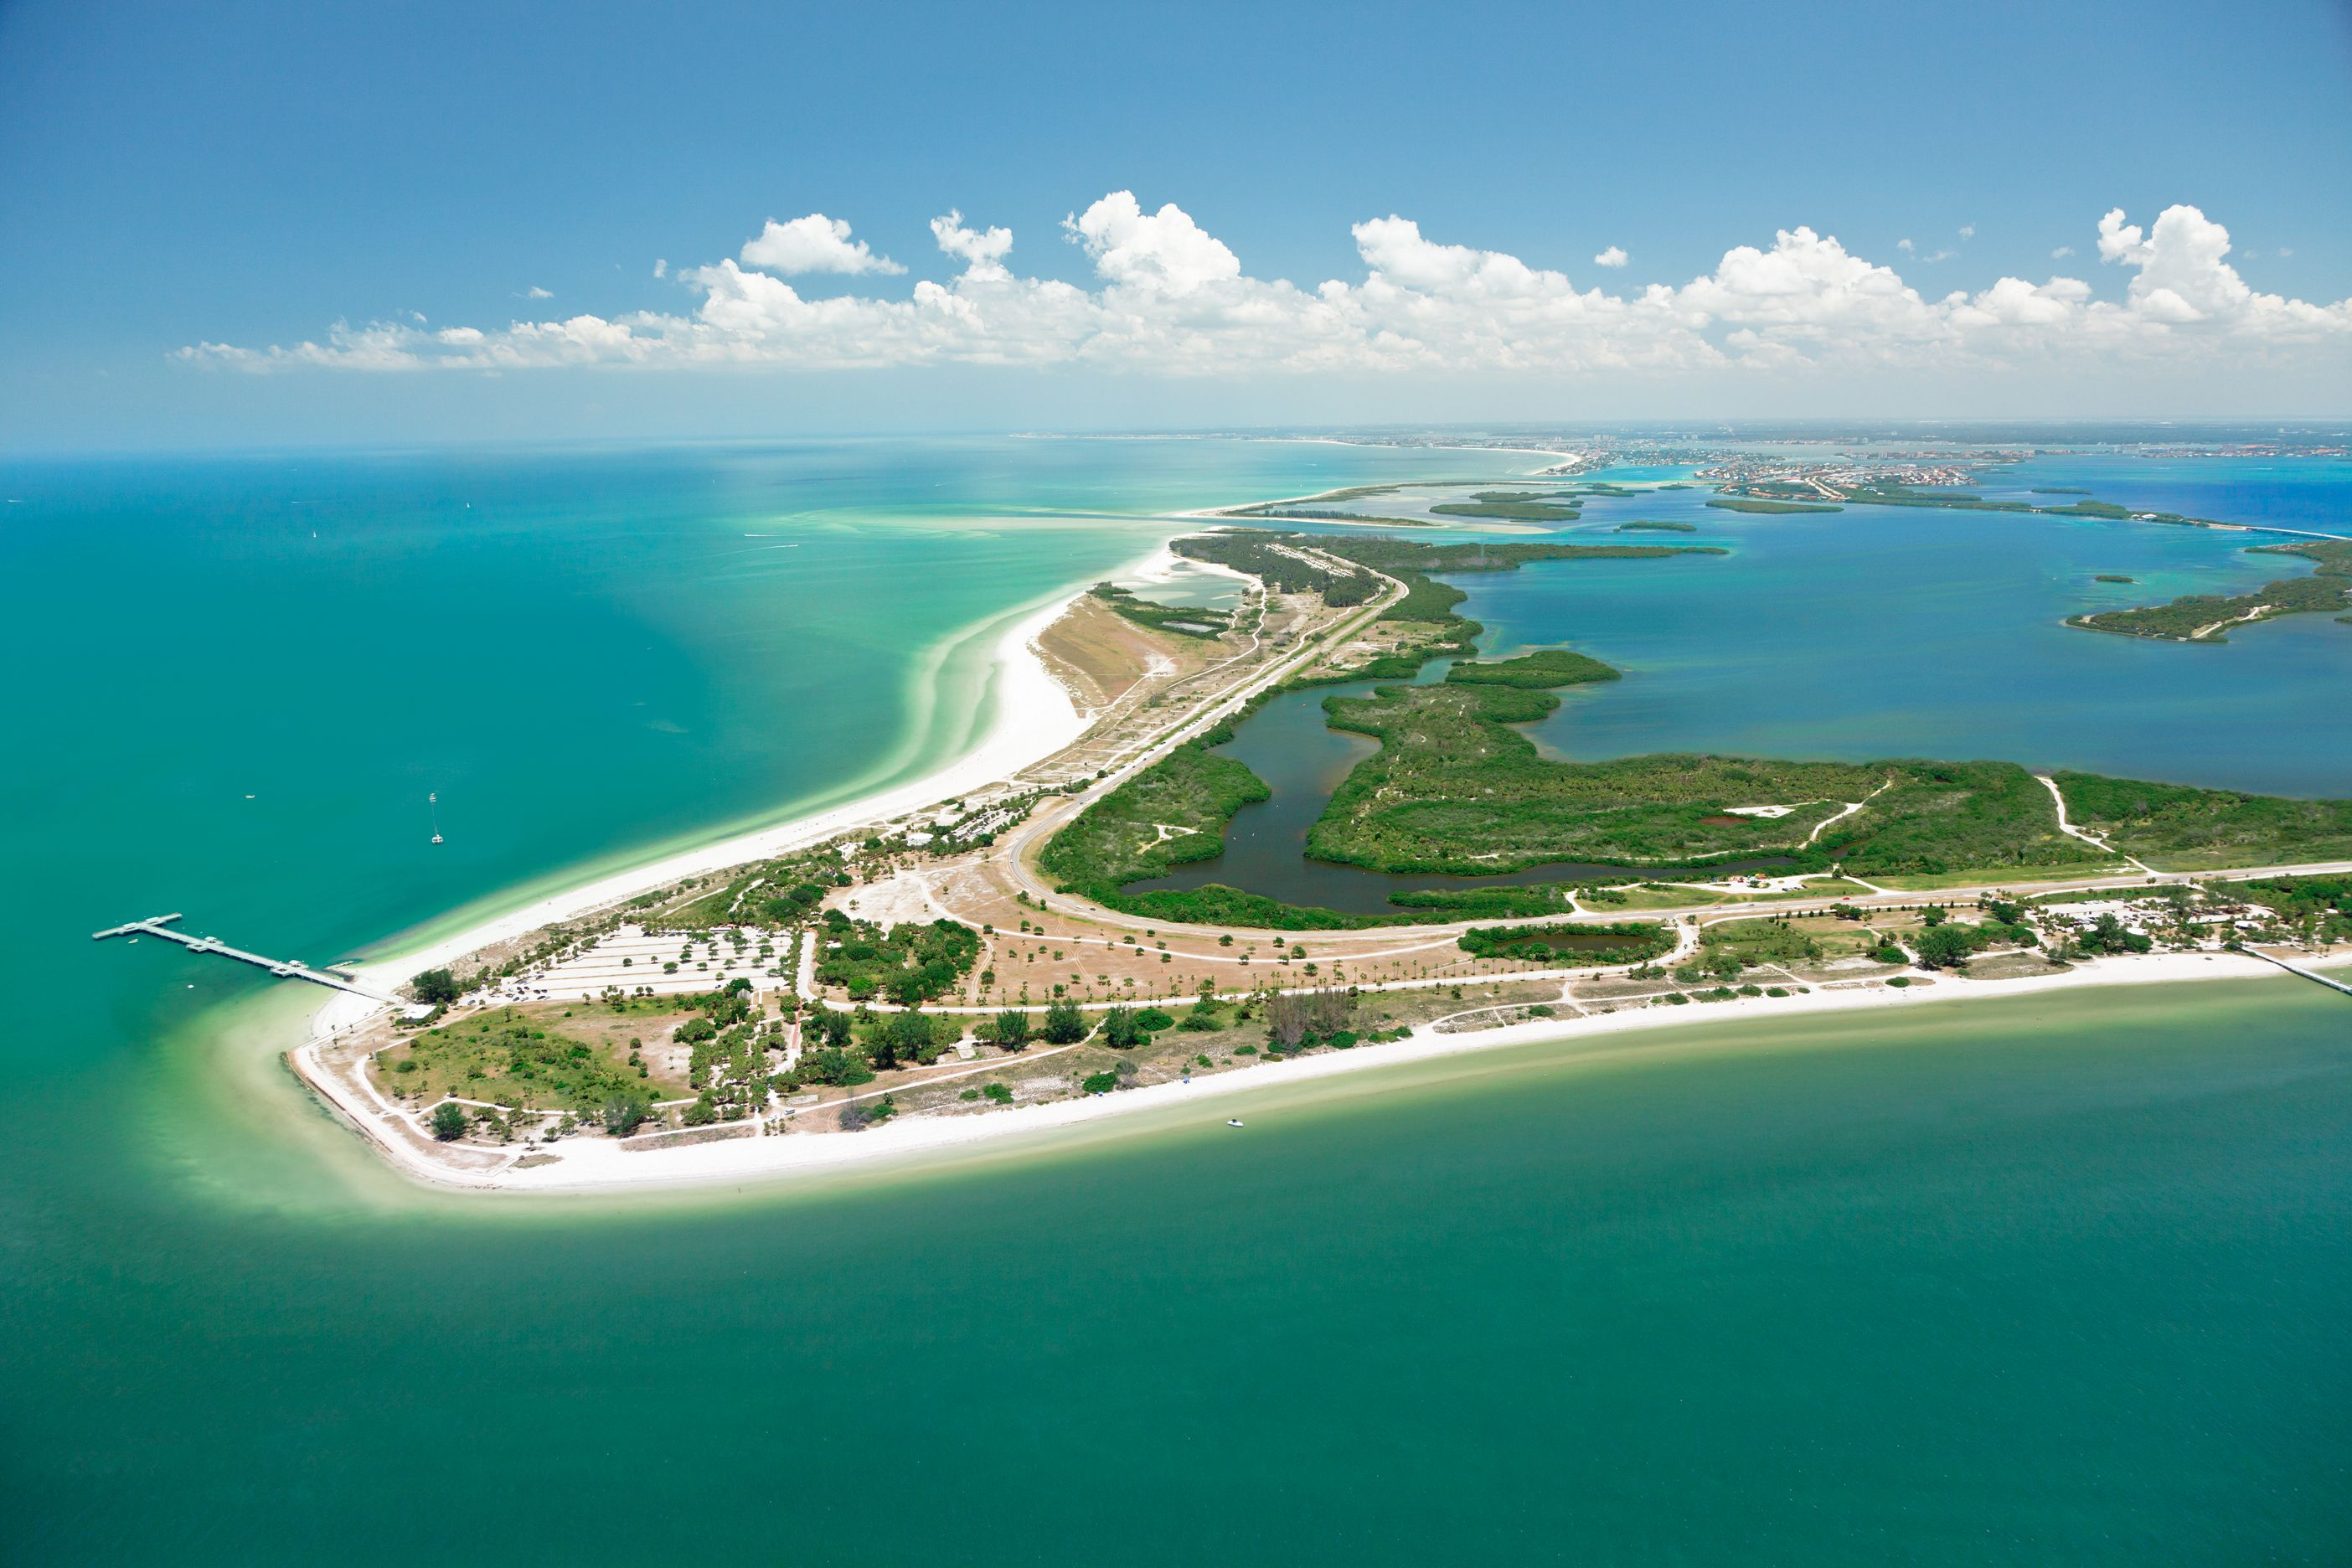 Pin By Visit St Pete Clearwater On From Above St Pete Clearwater Best Beach In Florida Visit Florida Florida Beaches